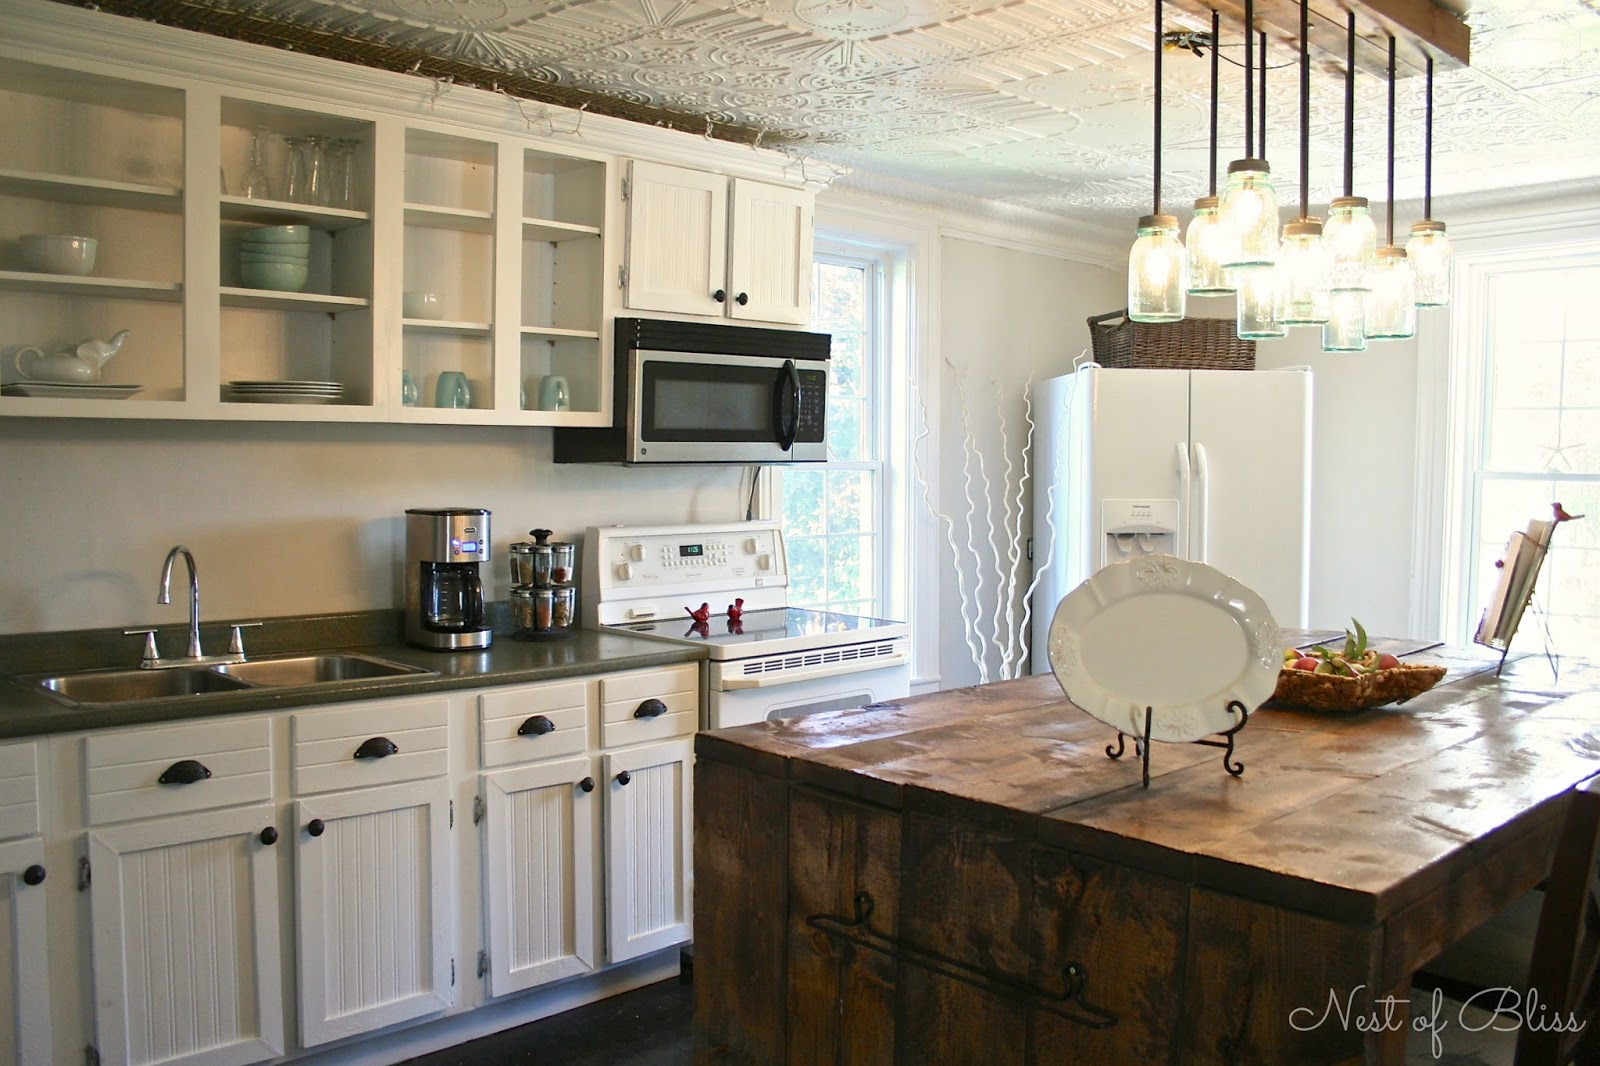 Reclaimed Wood Kitchen Cabinets Kitchen Renovation Makeover Progress Before And After